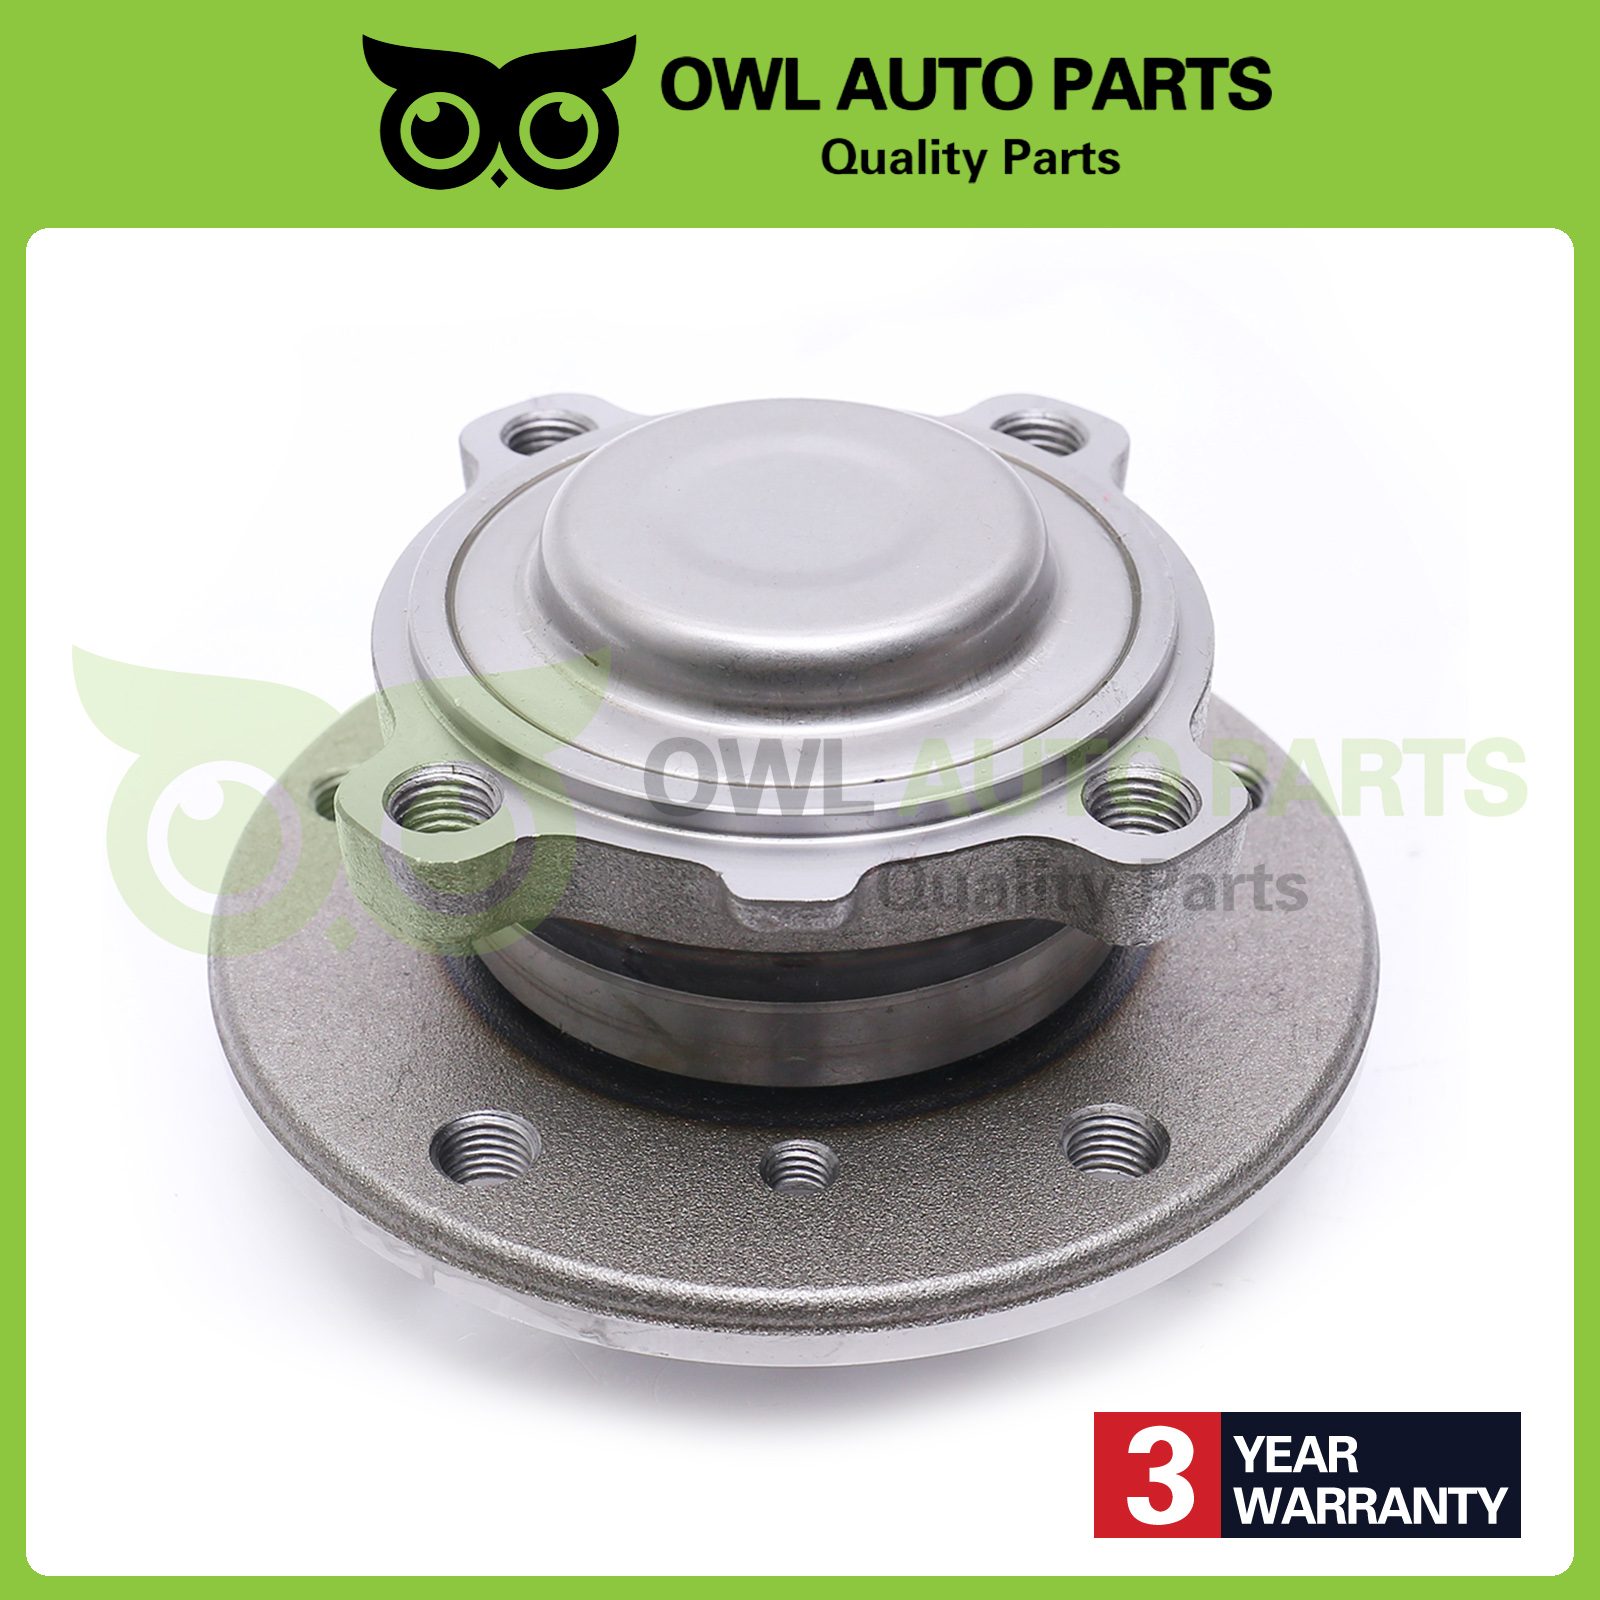 Front Wheel Bearing And Hub Assembly Pair For BMW 328i 335i X1 325i 128i 330i Z4 135i 335d 325Ci 330Ci 335is 135is 323i